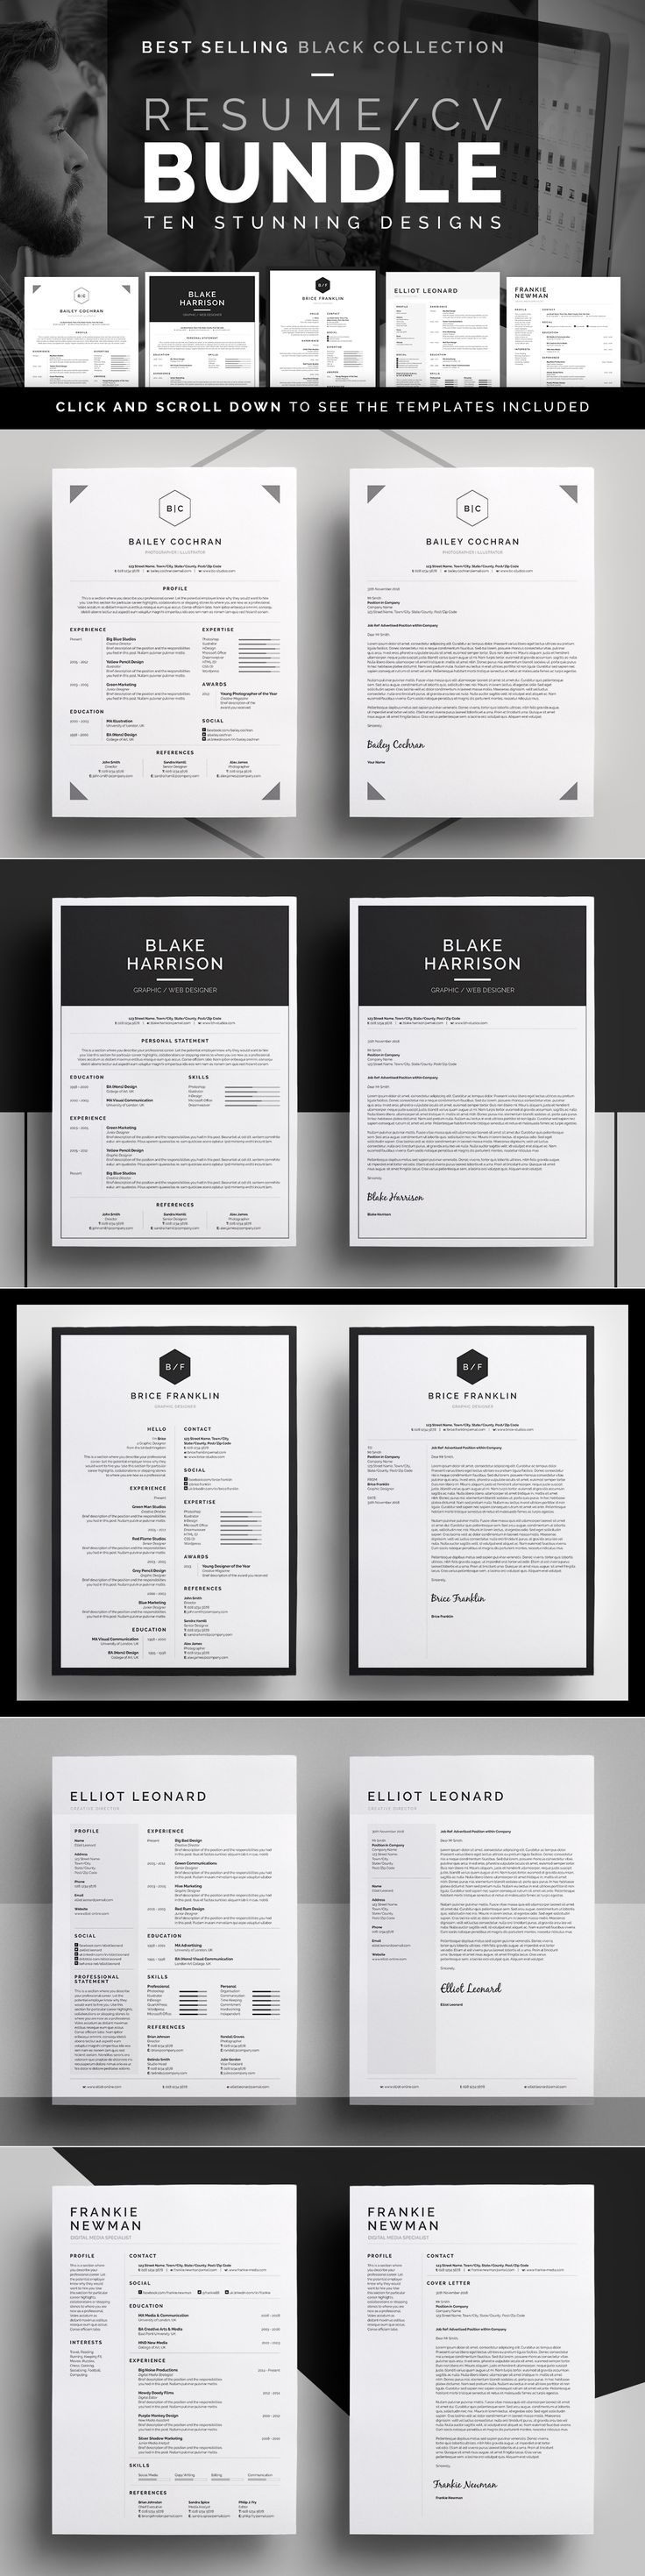 resume cv bundle cover letters business cards customizable